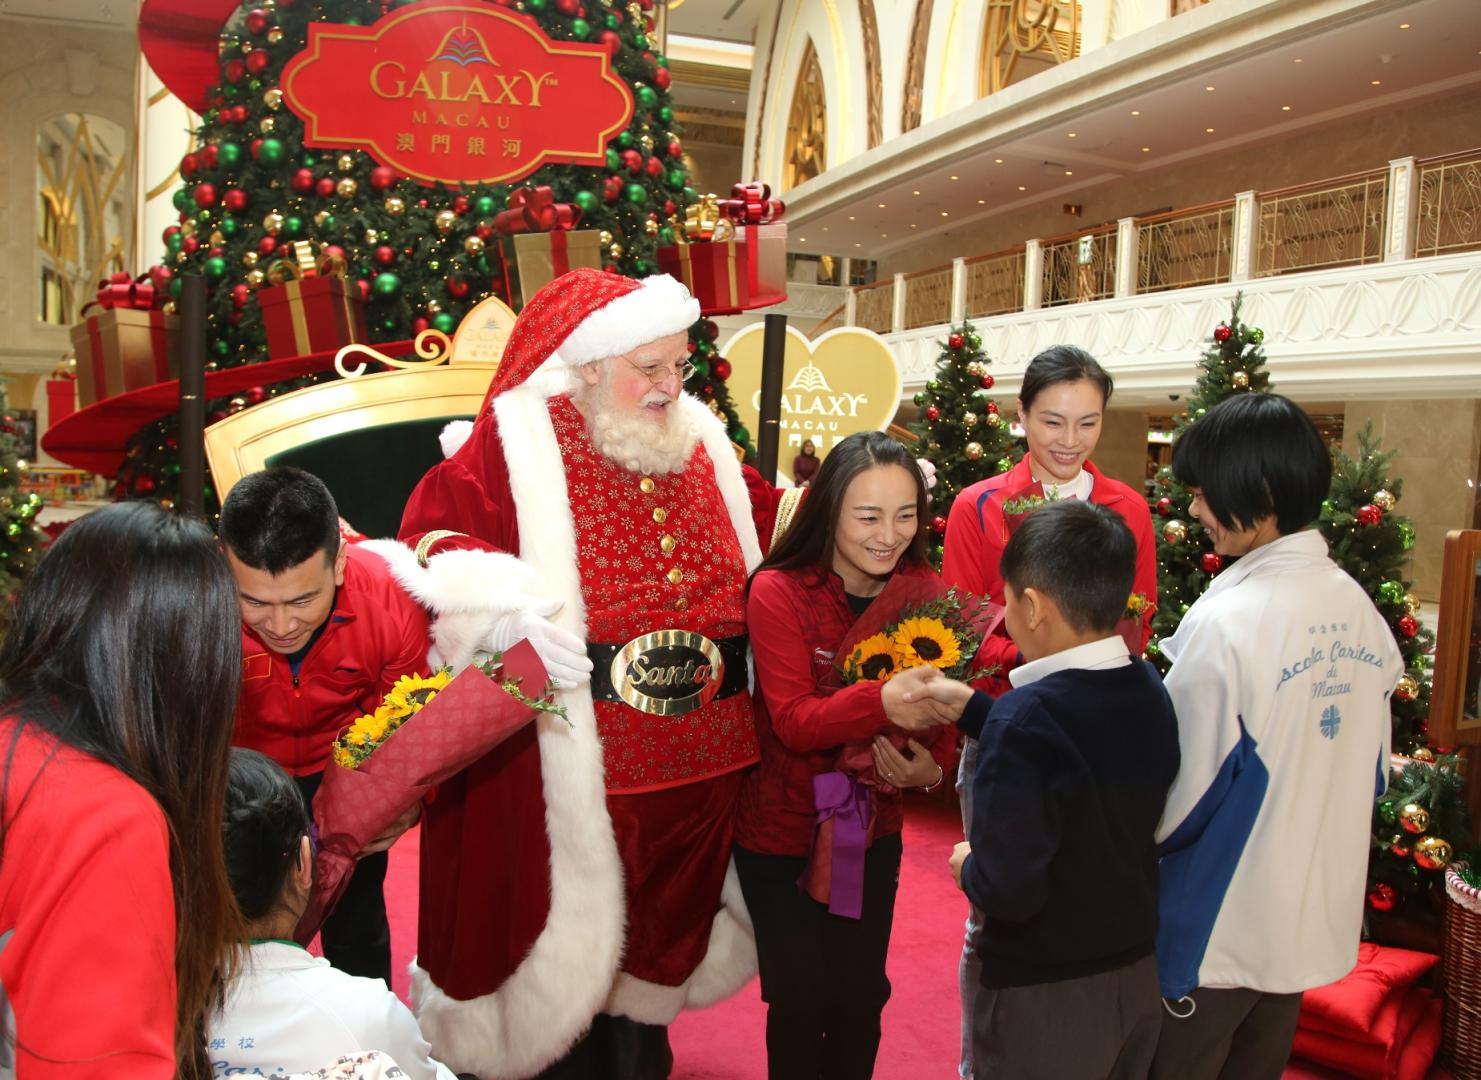 On the afternoon of December 11, the three Chinese gold medalists including Wu Minxia, Han Xiaopeng and Li Nina arrived at Santa's Grotto in Galaxy Macau's East Square, where students from Escola Caritas de Macau welcomed them with bouquets of flowers.